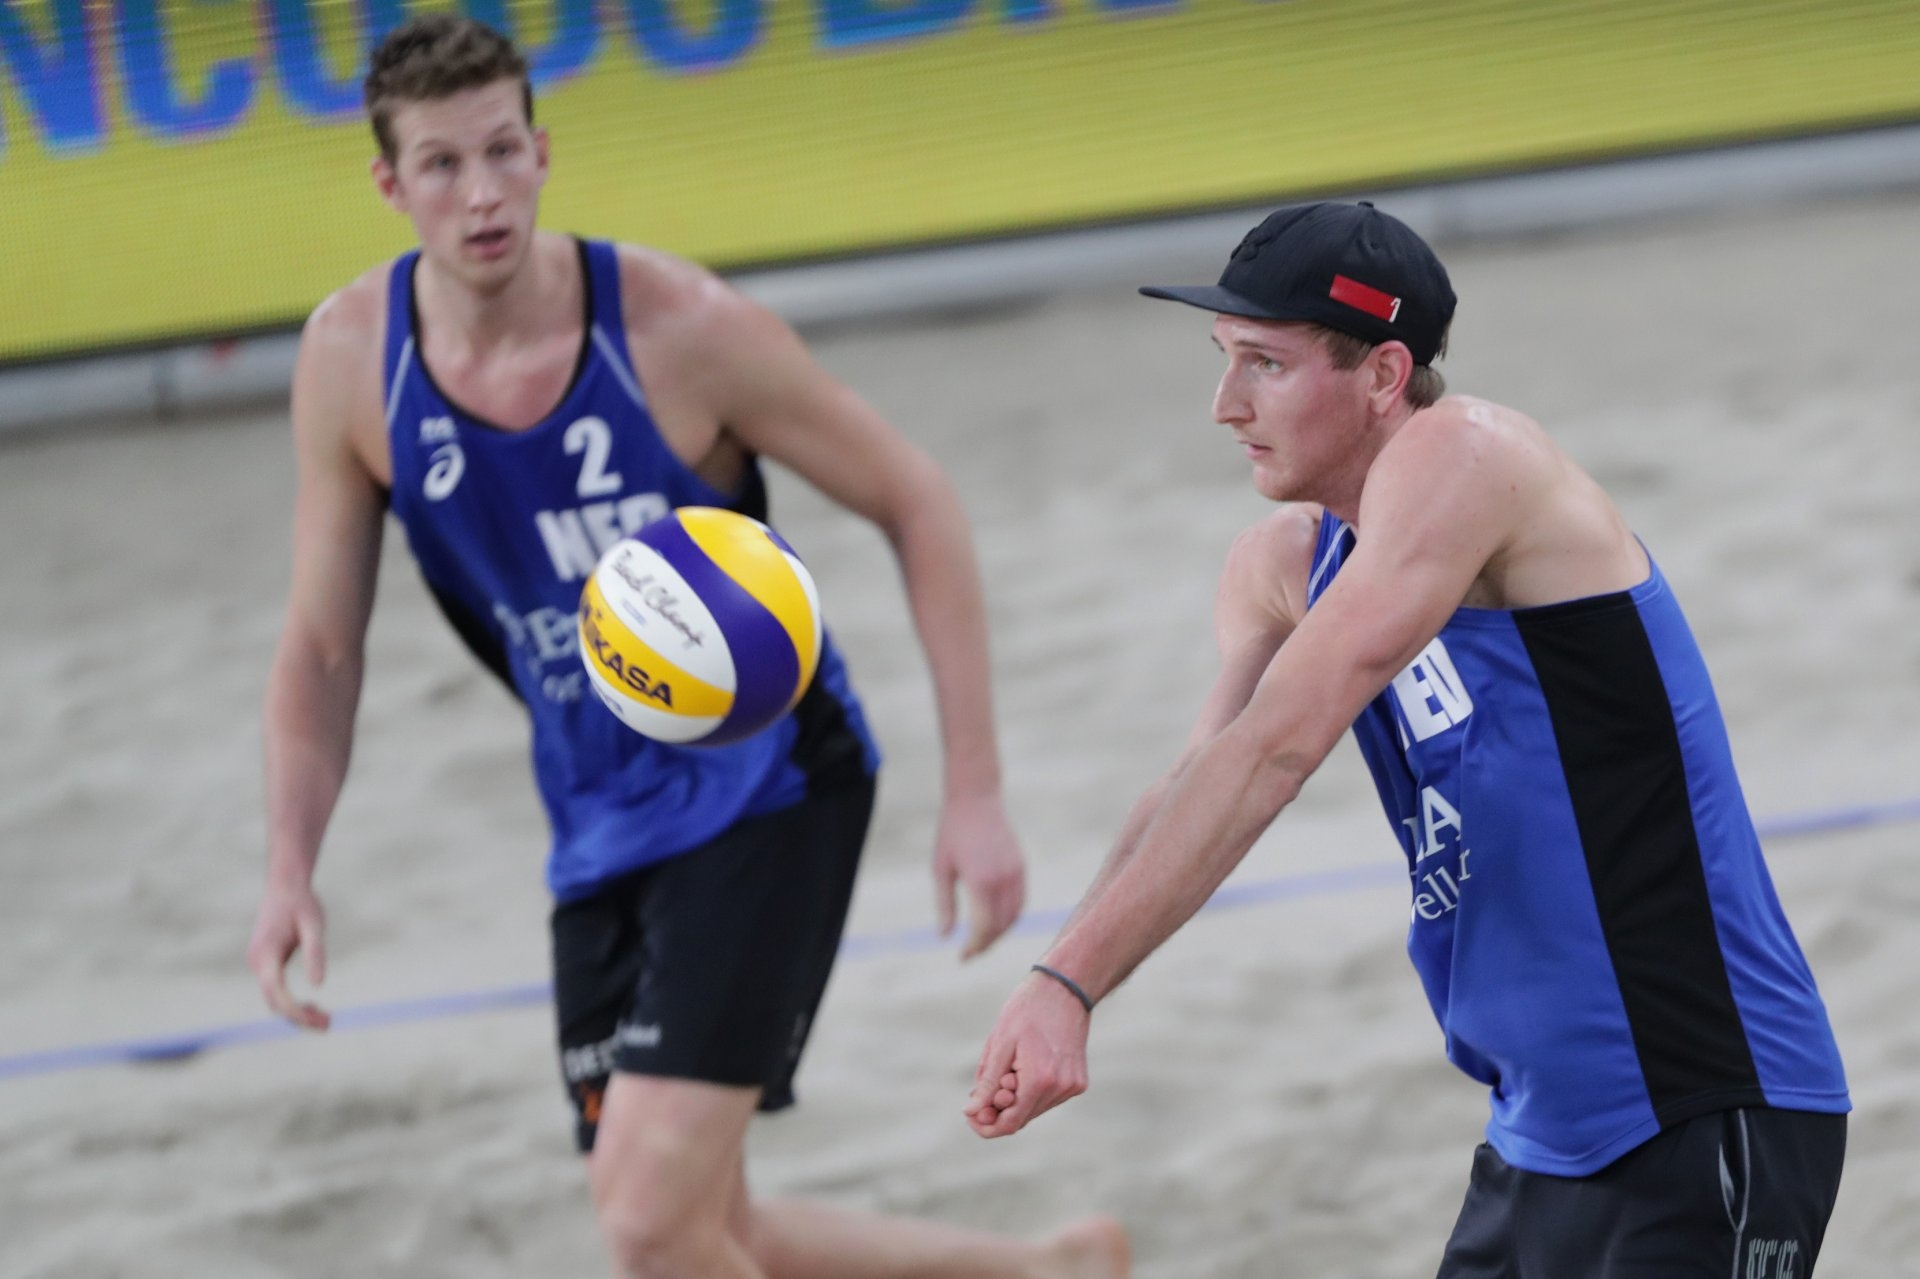 Christiaan Varenhorst and Jasper Bouter of the Netherlands are also set to compete in the qualifier